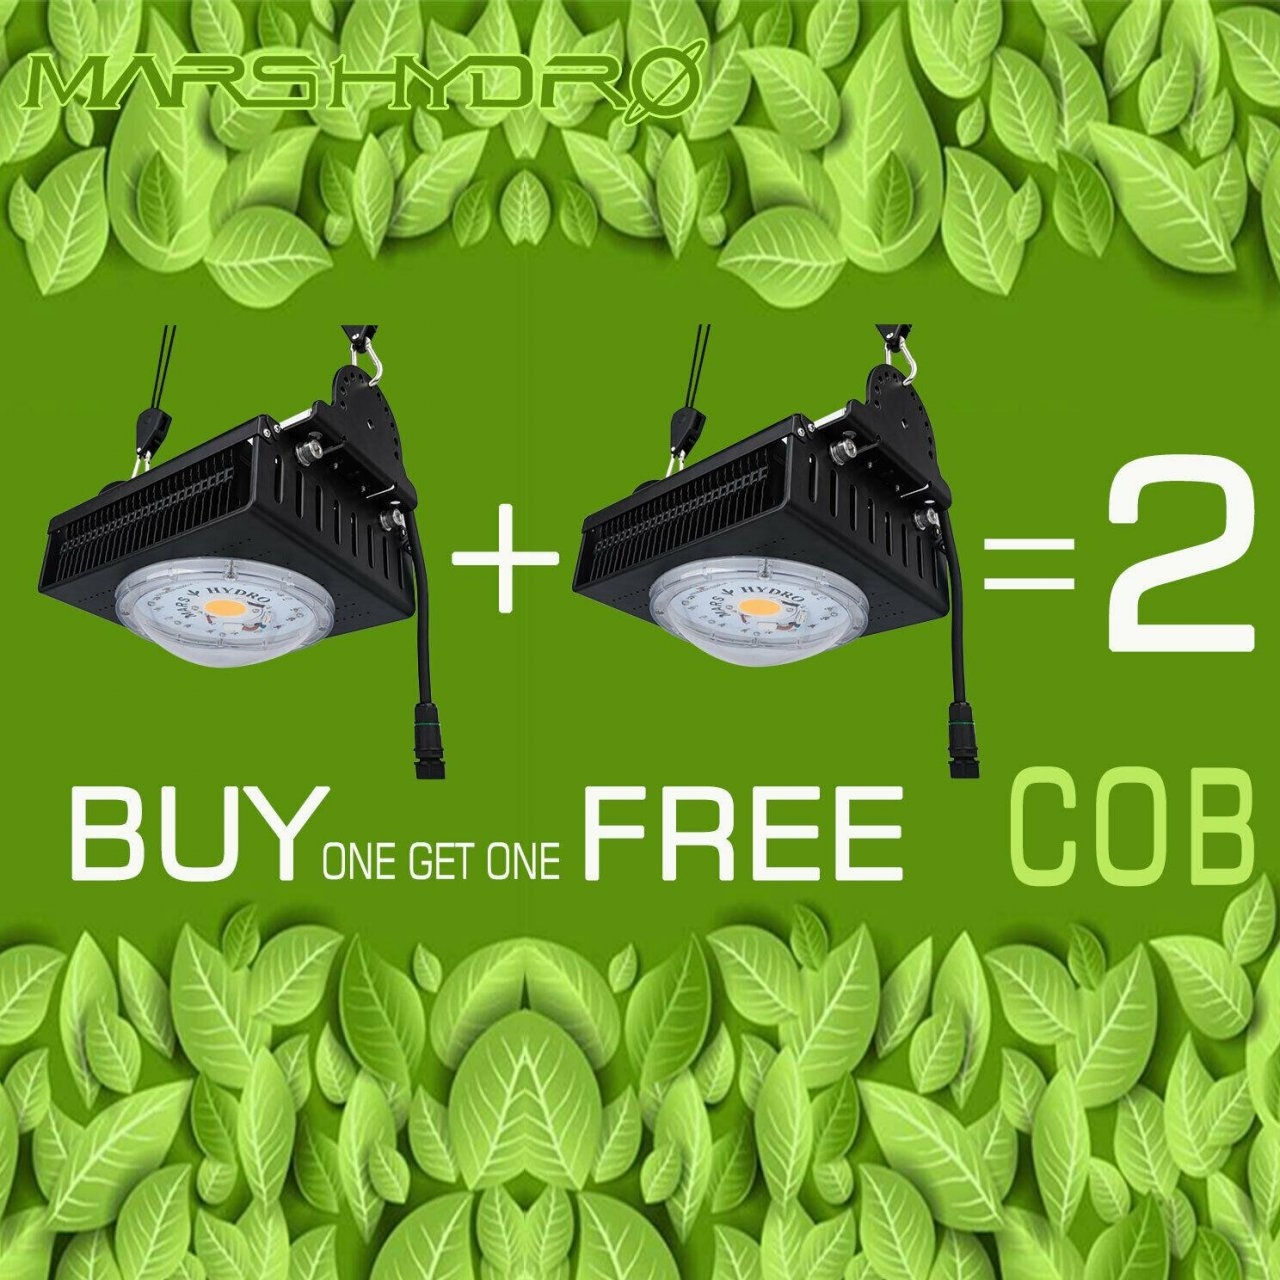 Mars Hydro COB promotion - buy one get one free.jpg